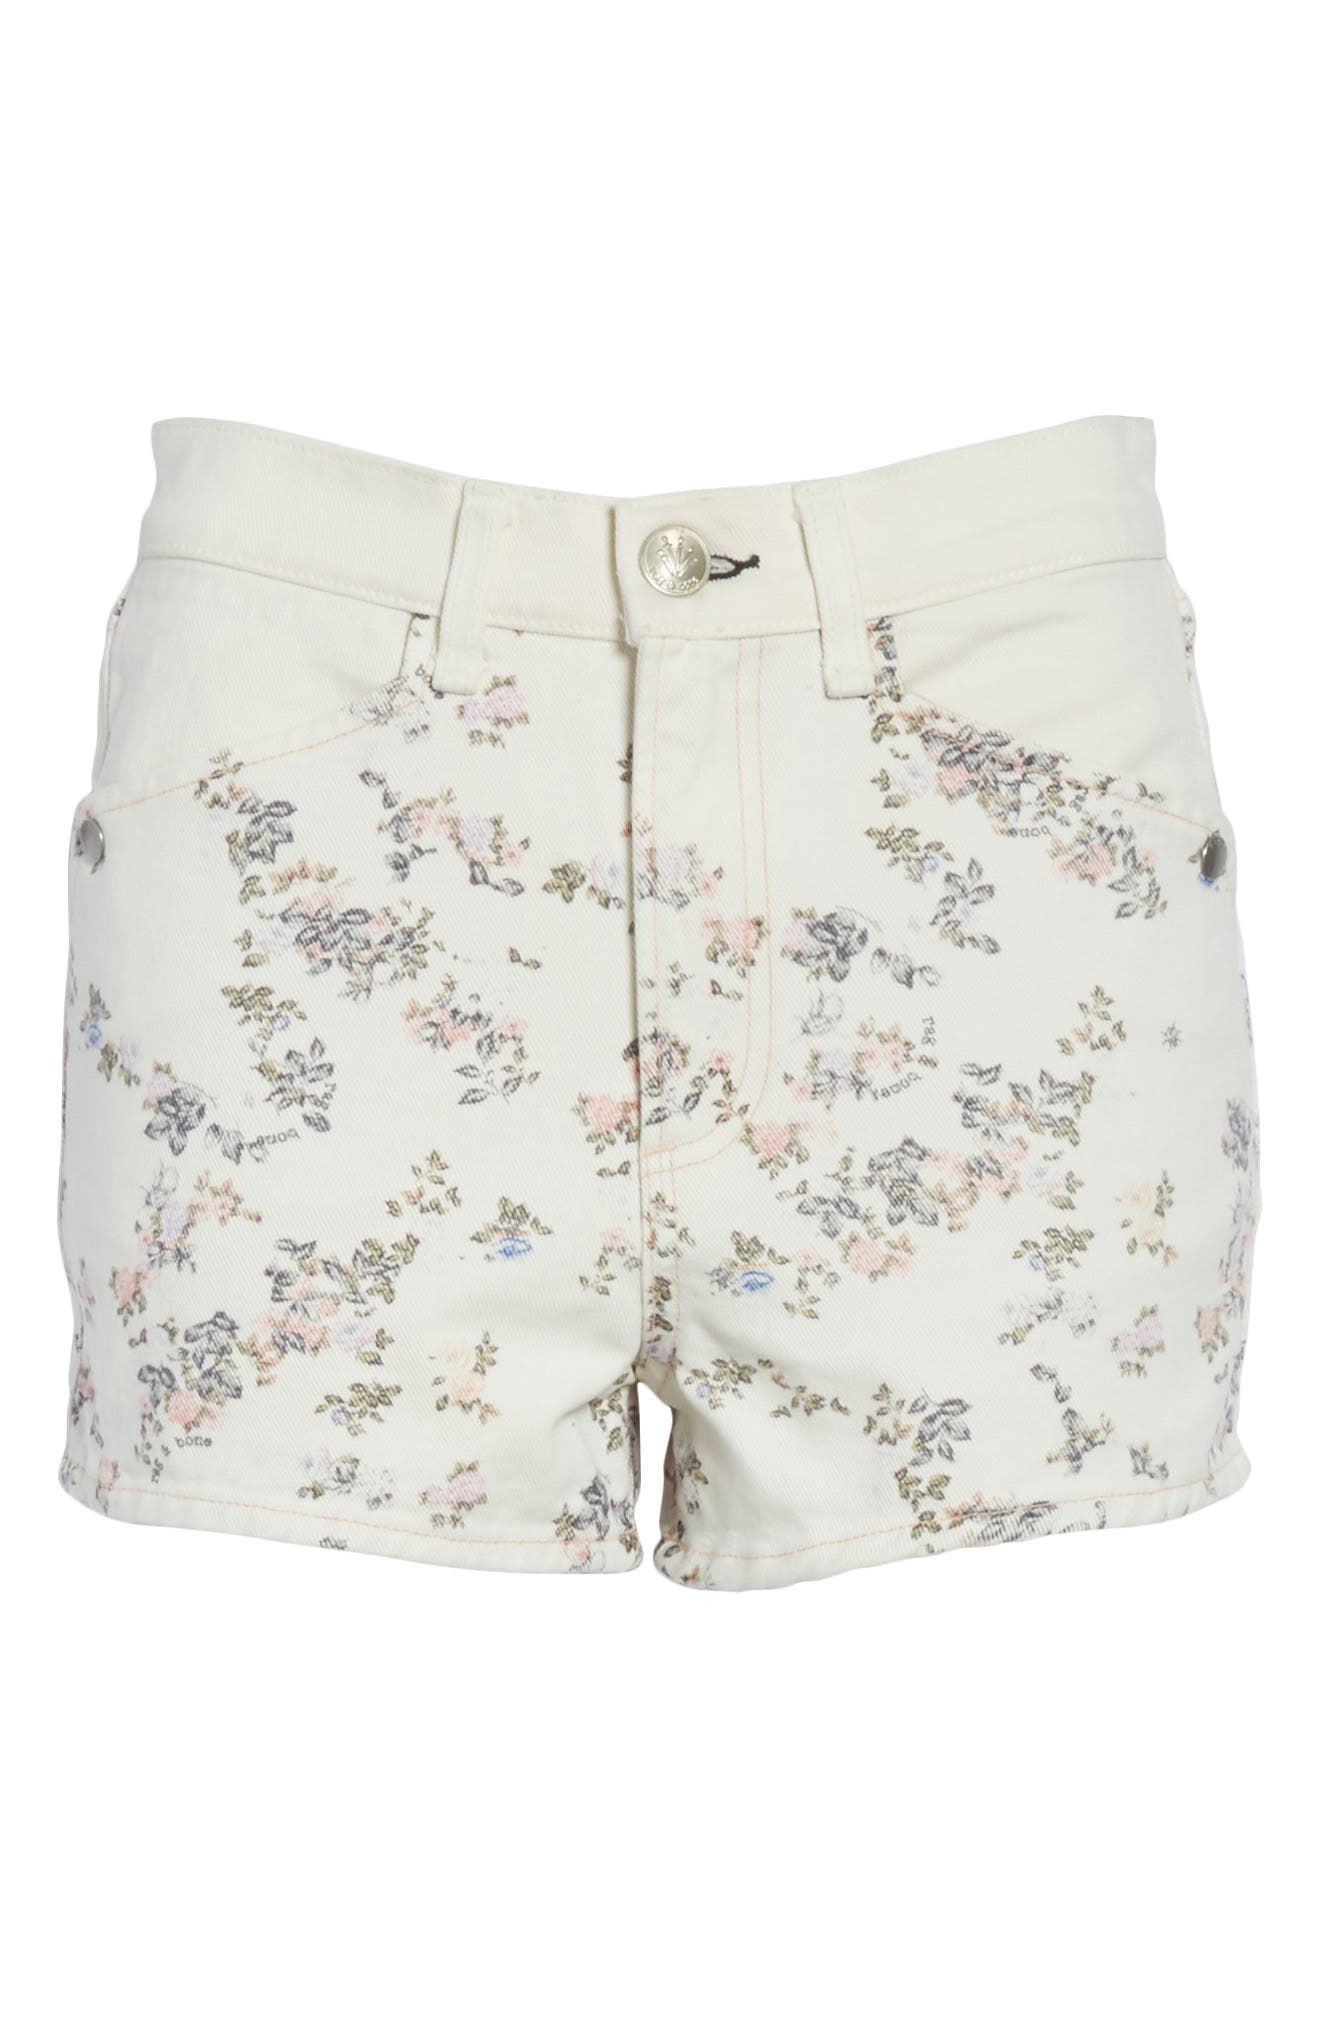 Ellie Twill Shorts,                             Alternate thumbnail 6, color,                             MICRO FLORAL